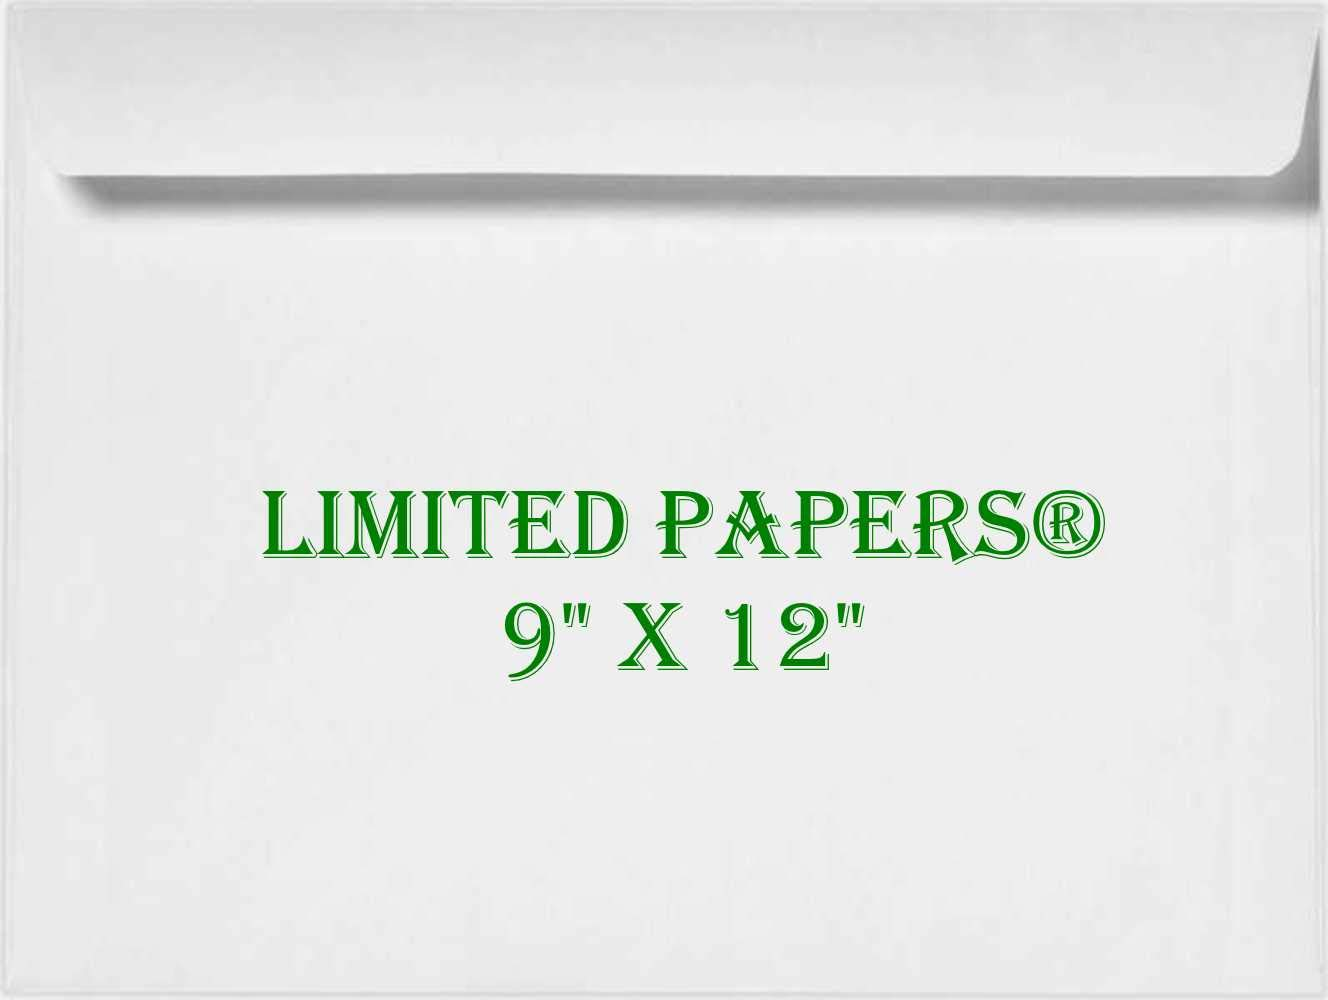 Limited Papers (TM) 9' x 12' Booklet 24# Envelopes White Wove (500)